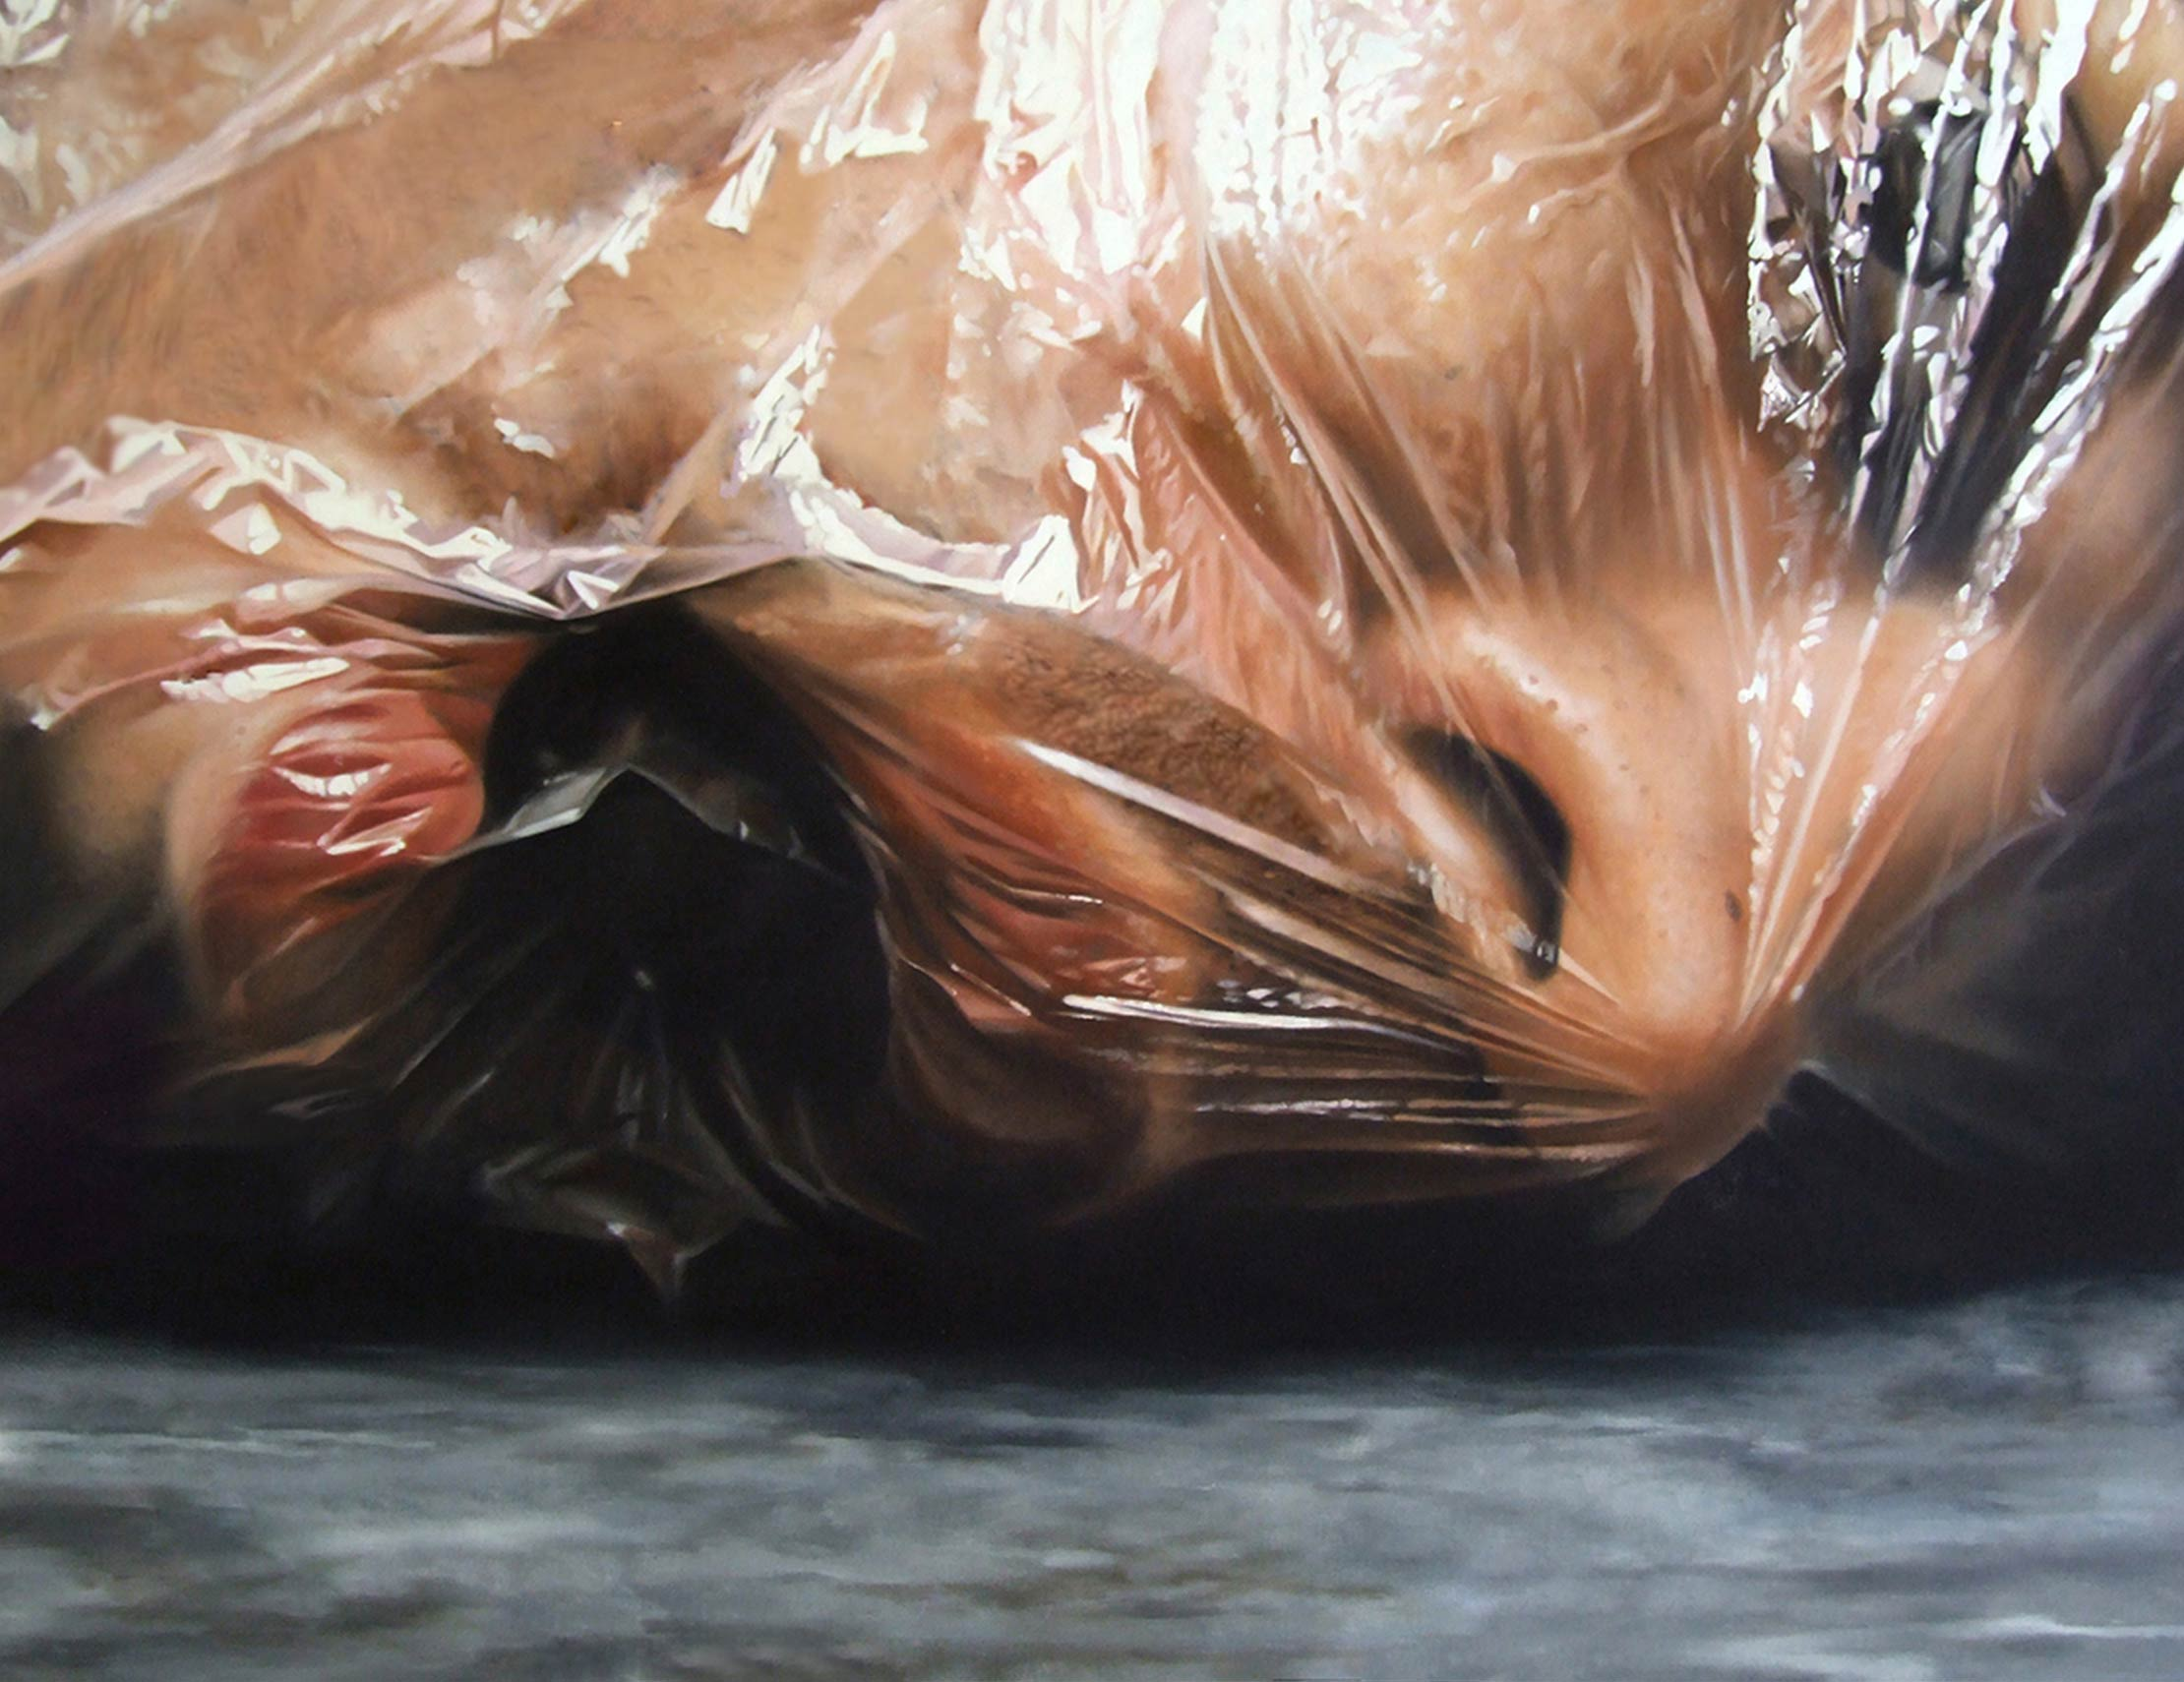 Magalhaes Disturbing Shockingly Realistic Oil Paintings Of His Own Dead Bodyarthaus